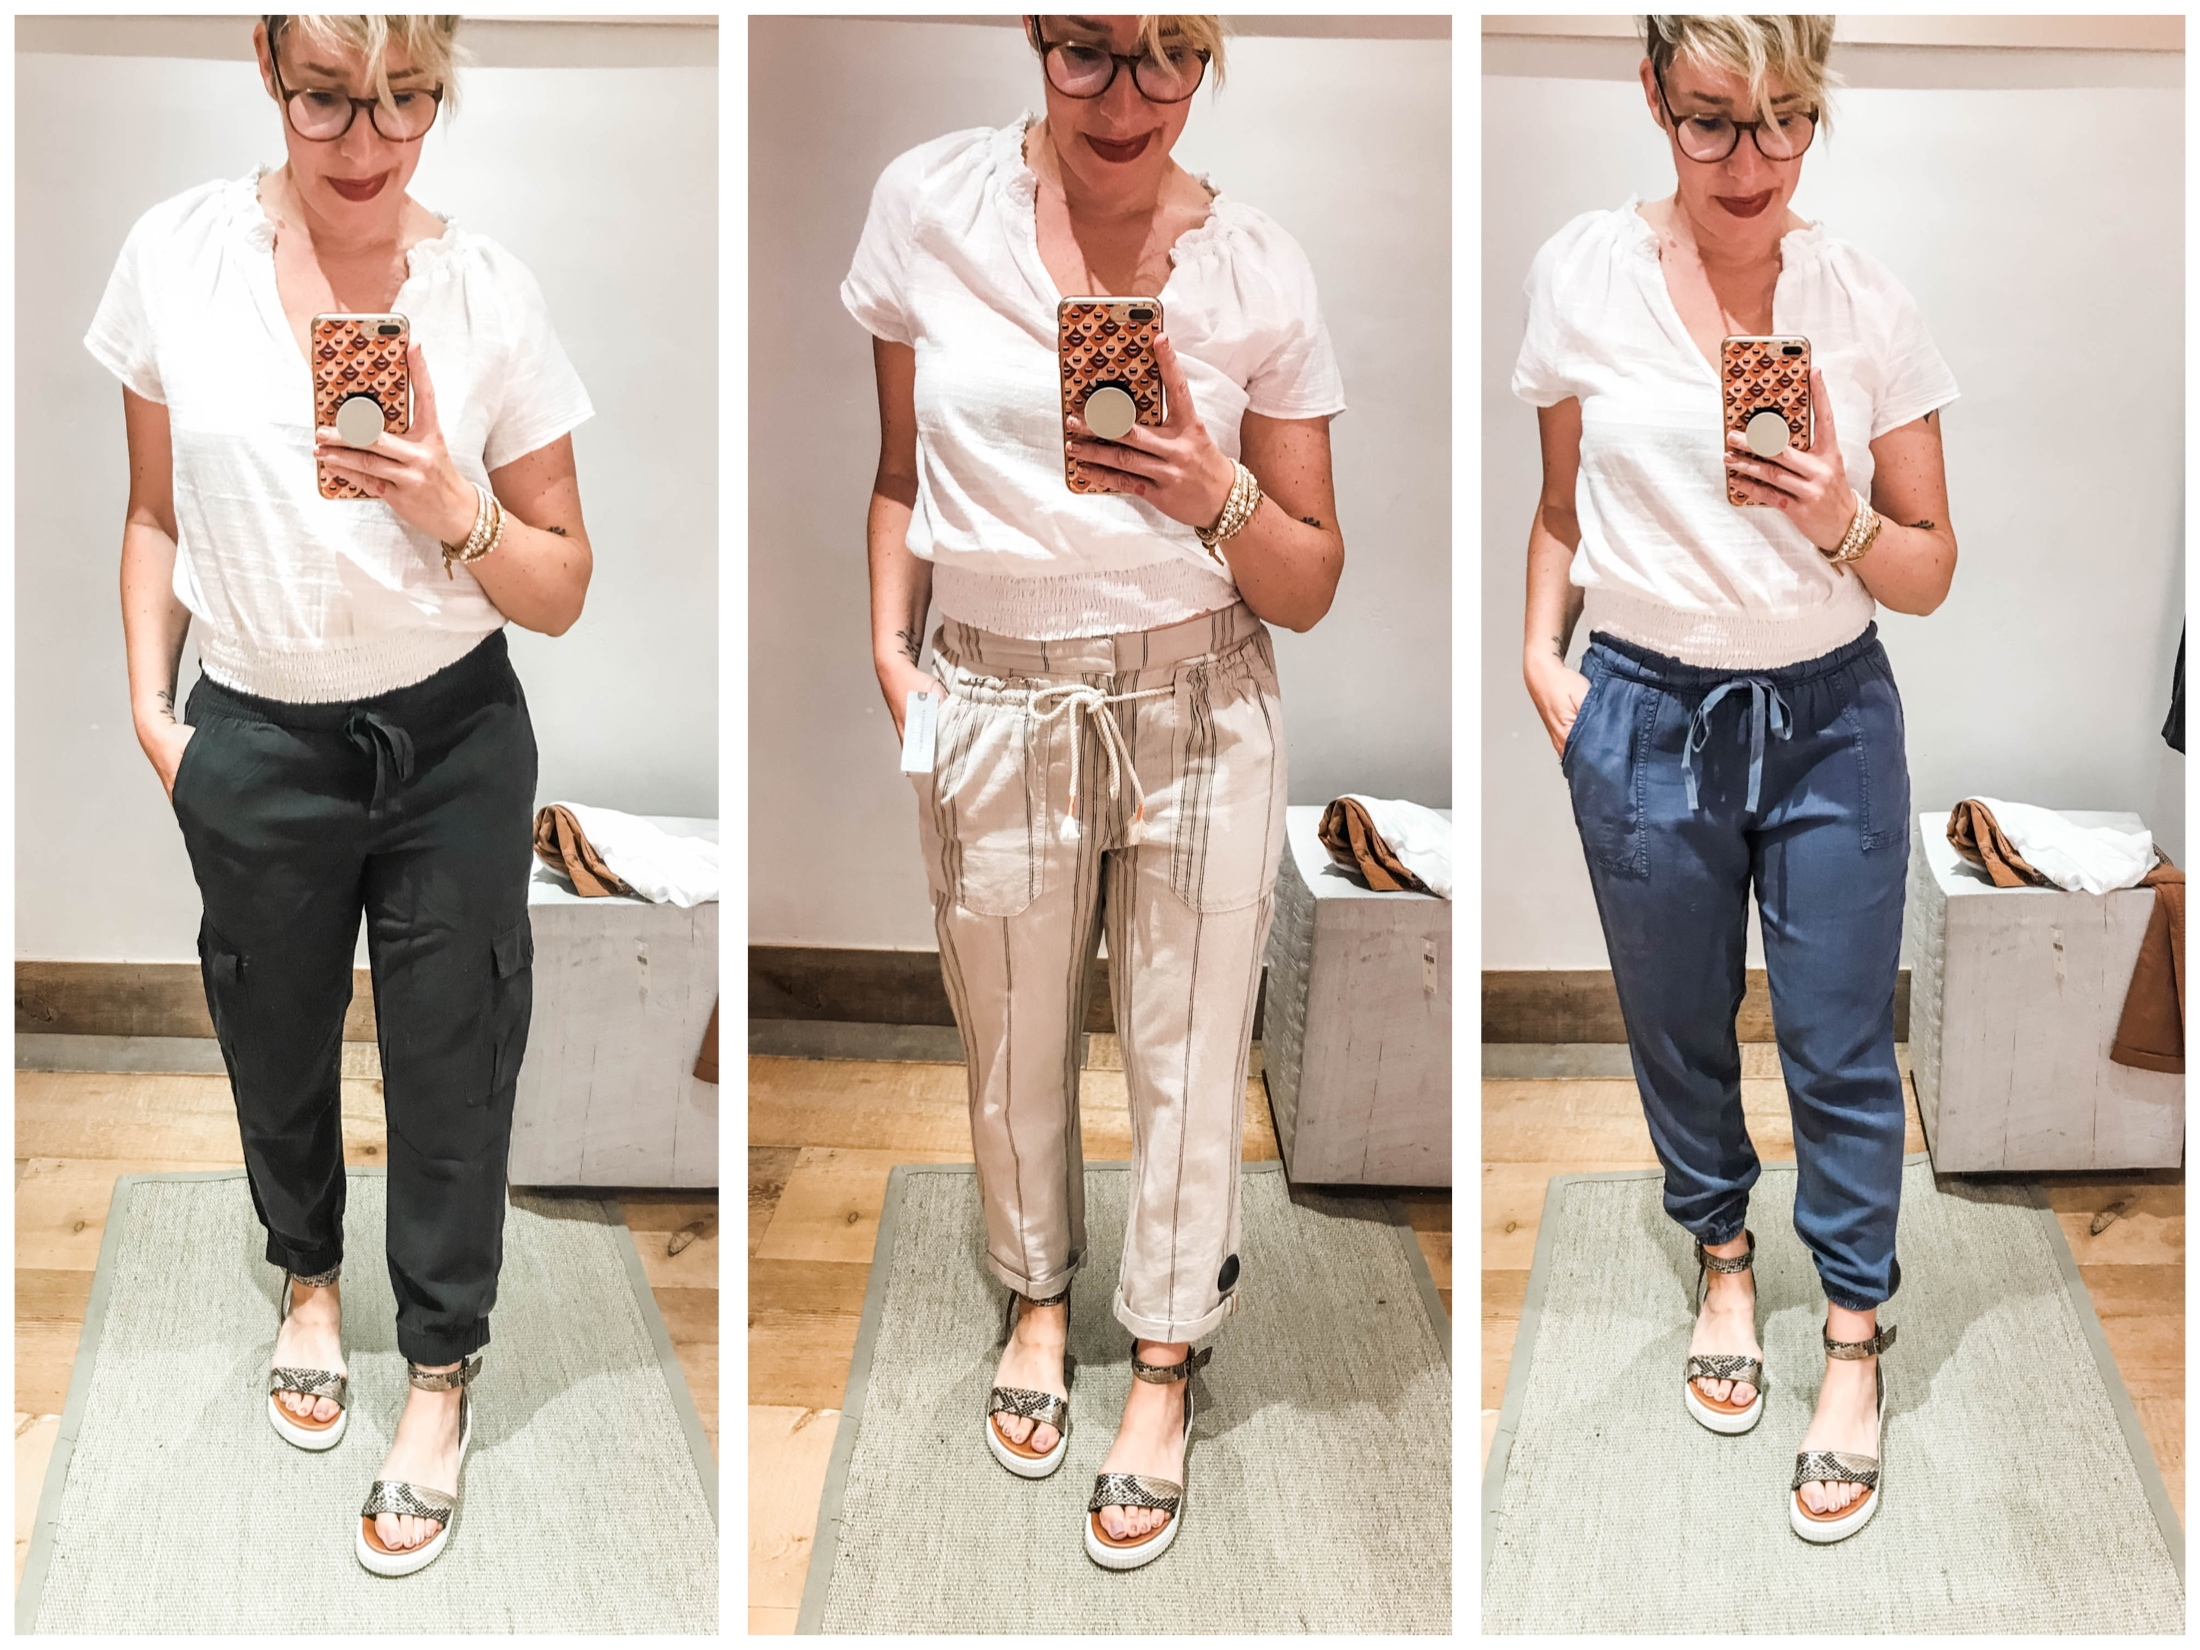 c49ed023c Lightweight Summer Pants Try-On (The Good, The Bad & The Fugly ...